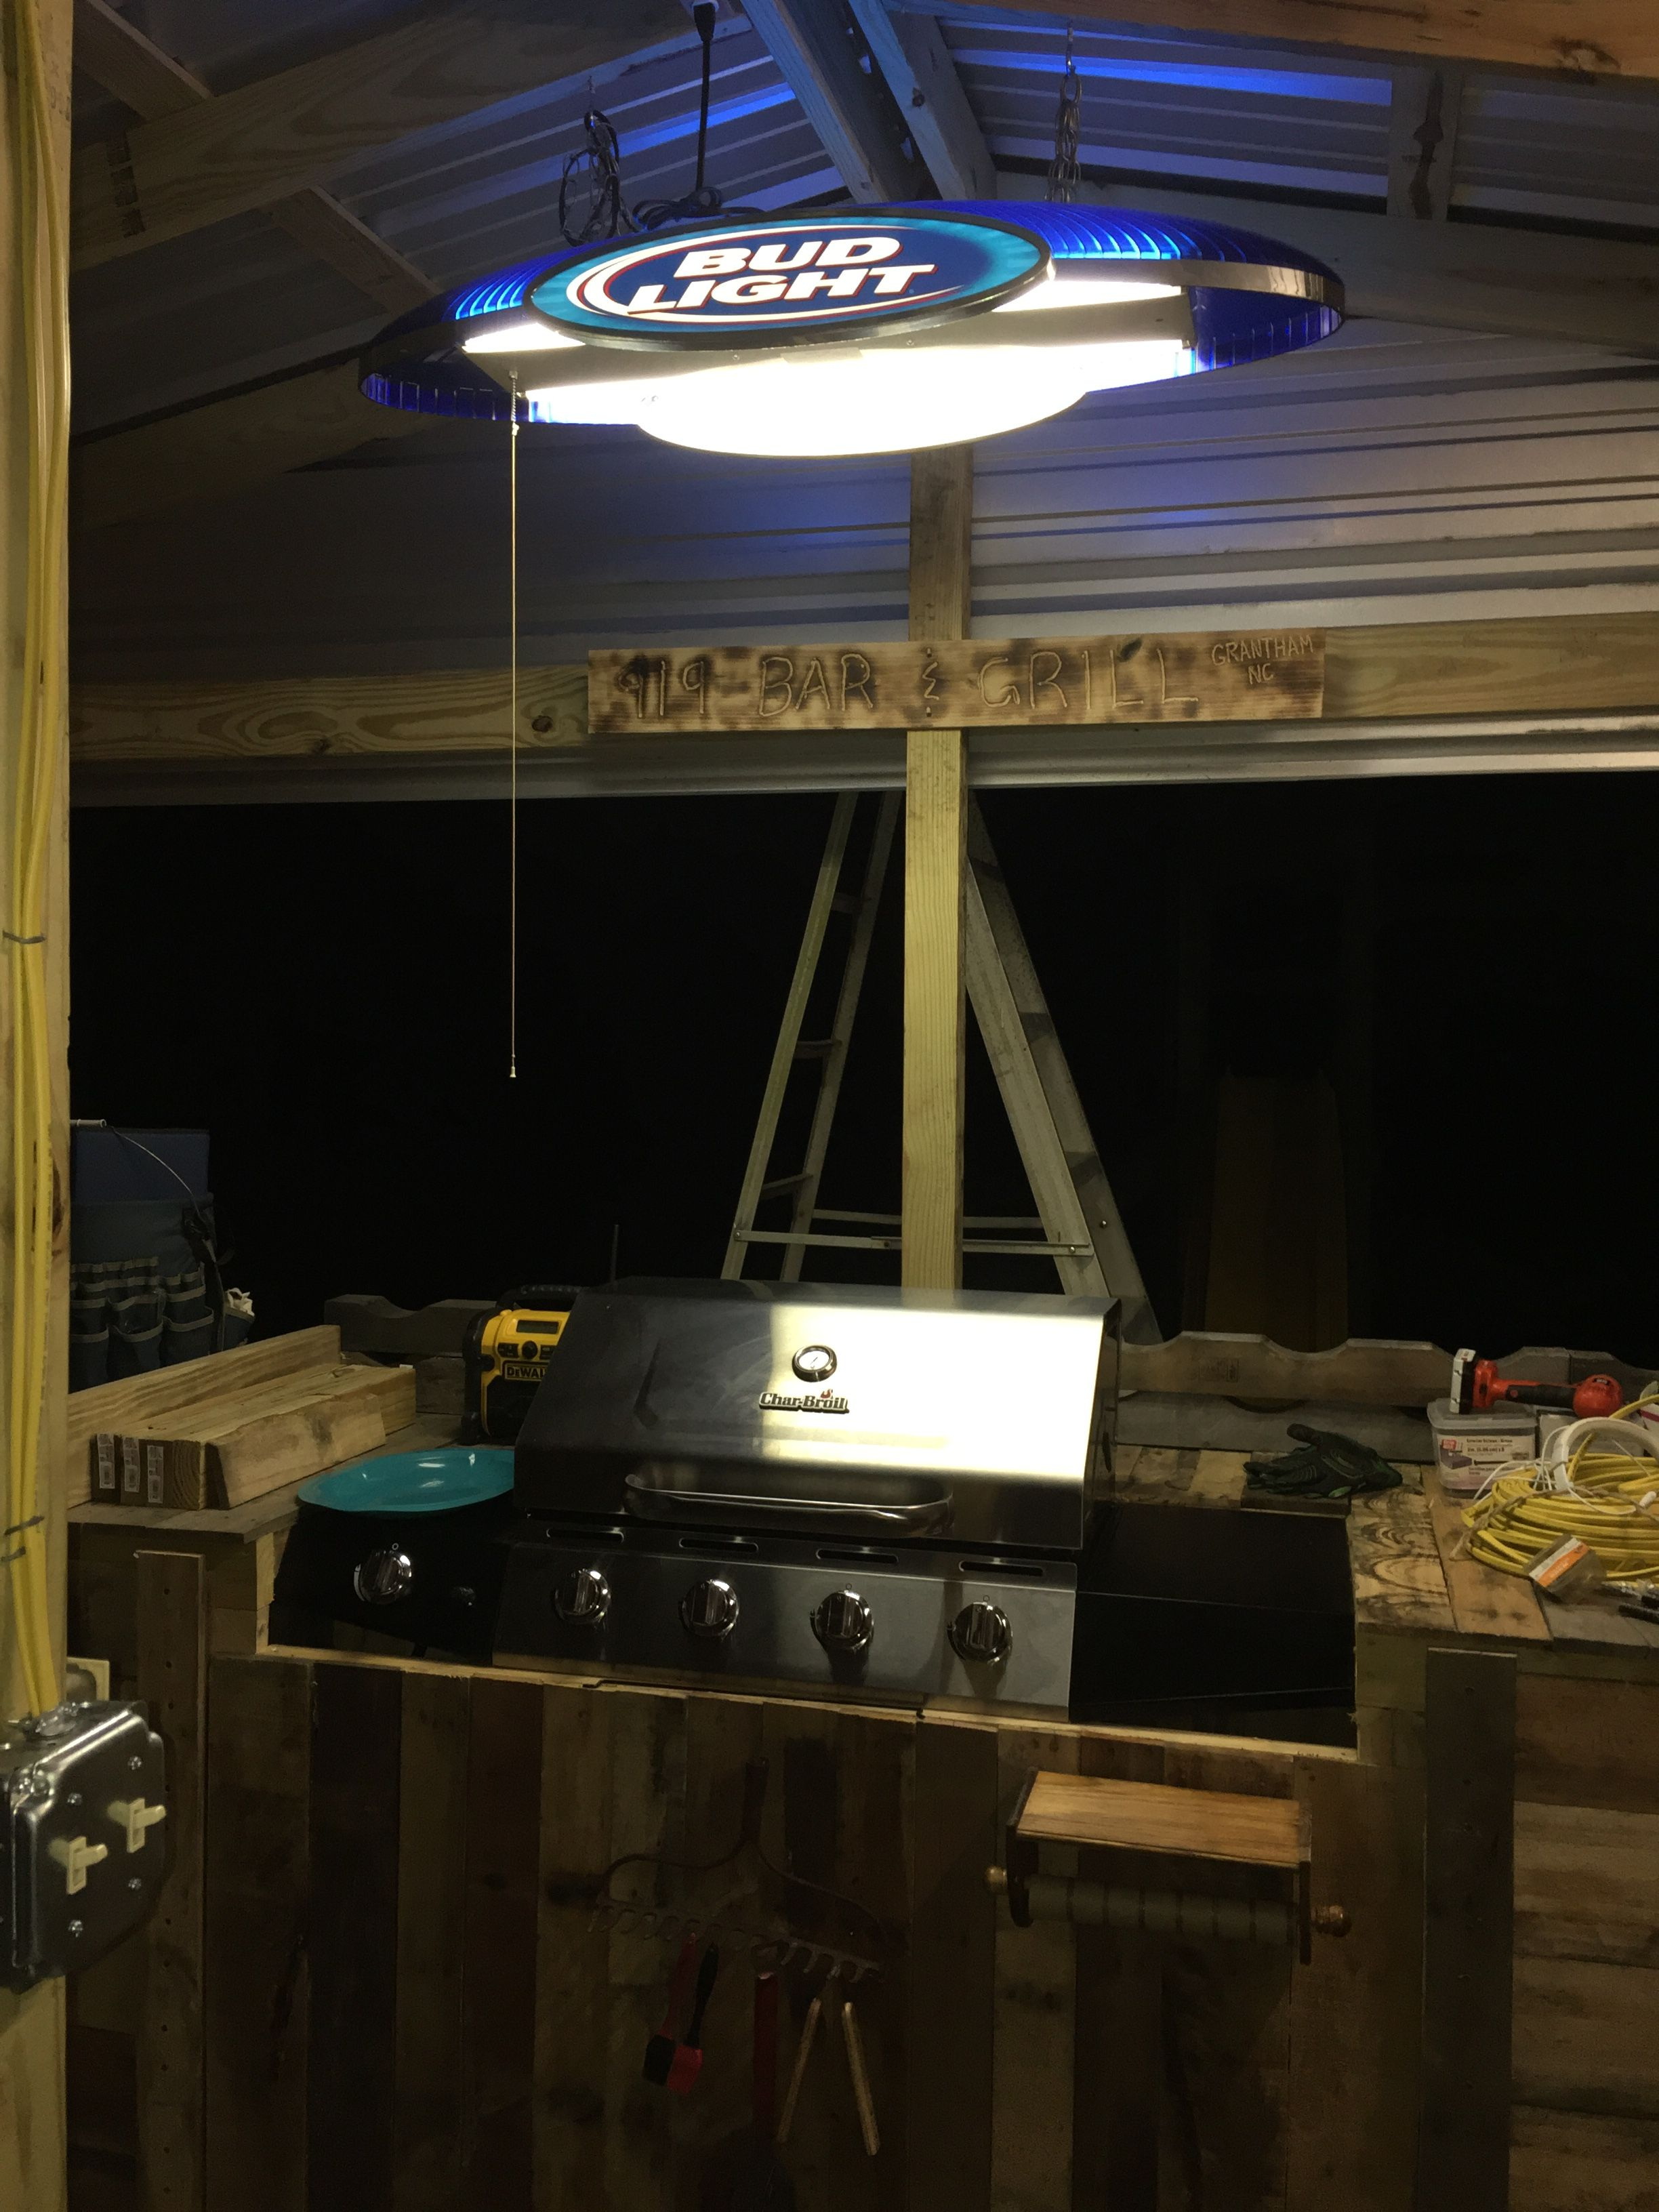 Outdoor kitchen grill and hanging light